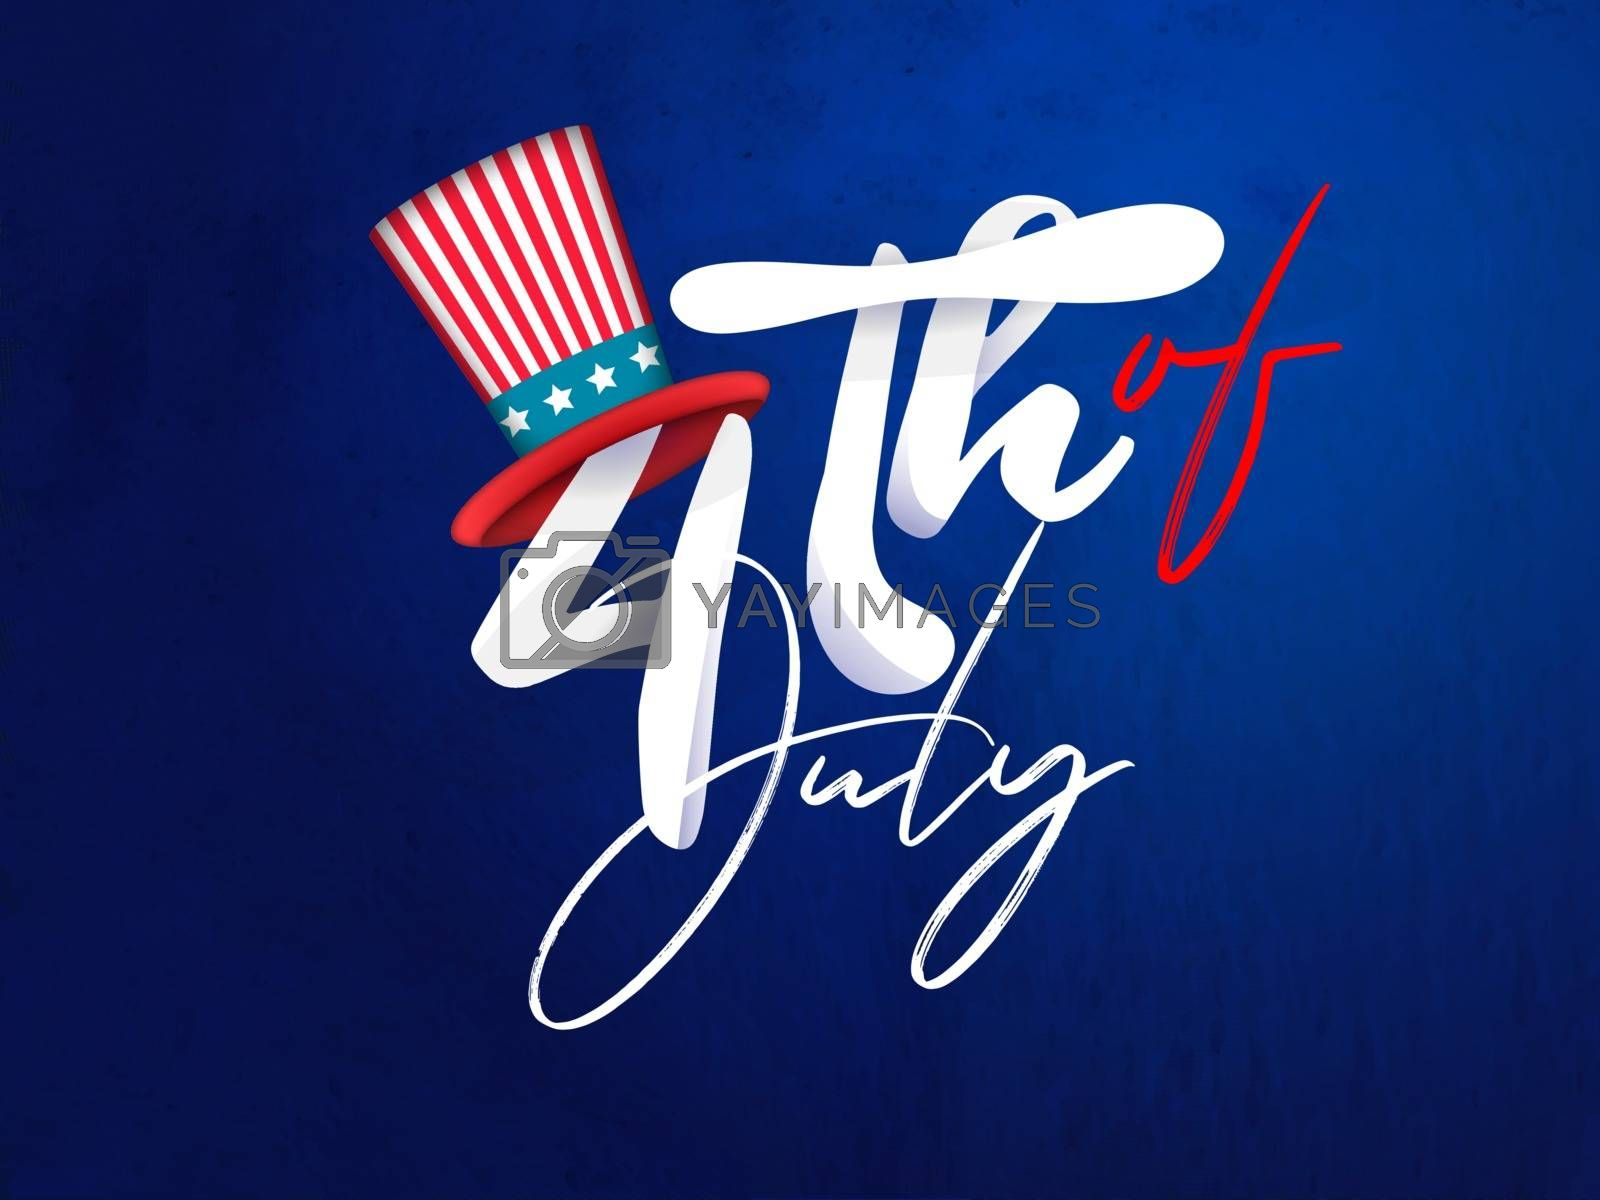 Calligraphy text 4th of july with uncle sam hat on shiny blue background.